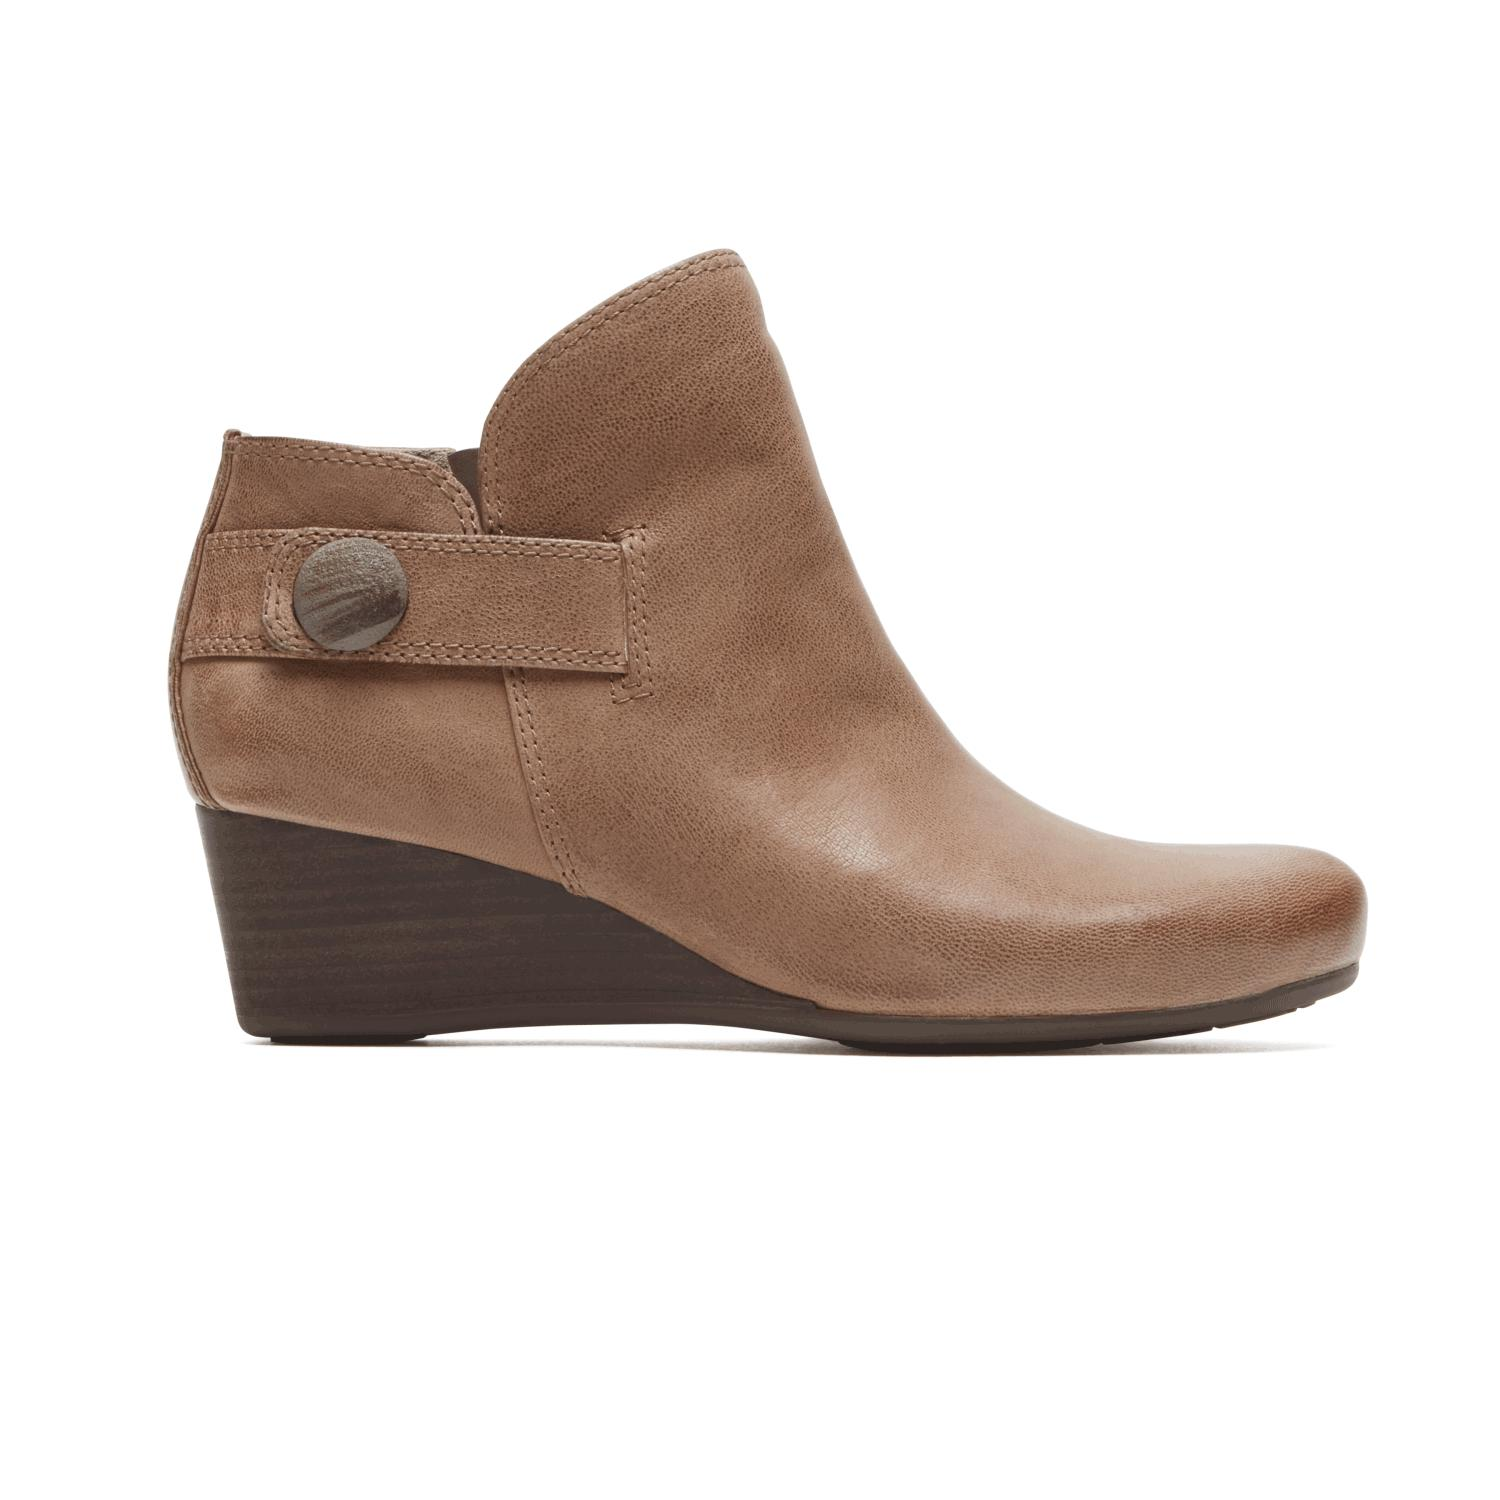 10ad868ef9a5 Lyst - Rockport Total Motion Wedge Stone Bootie in Brown